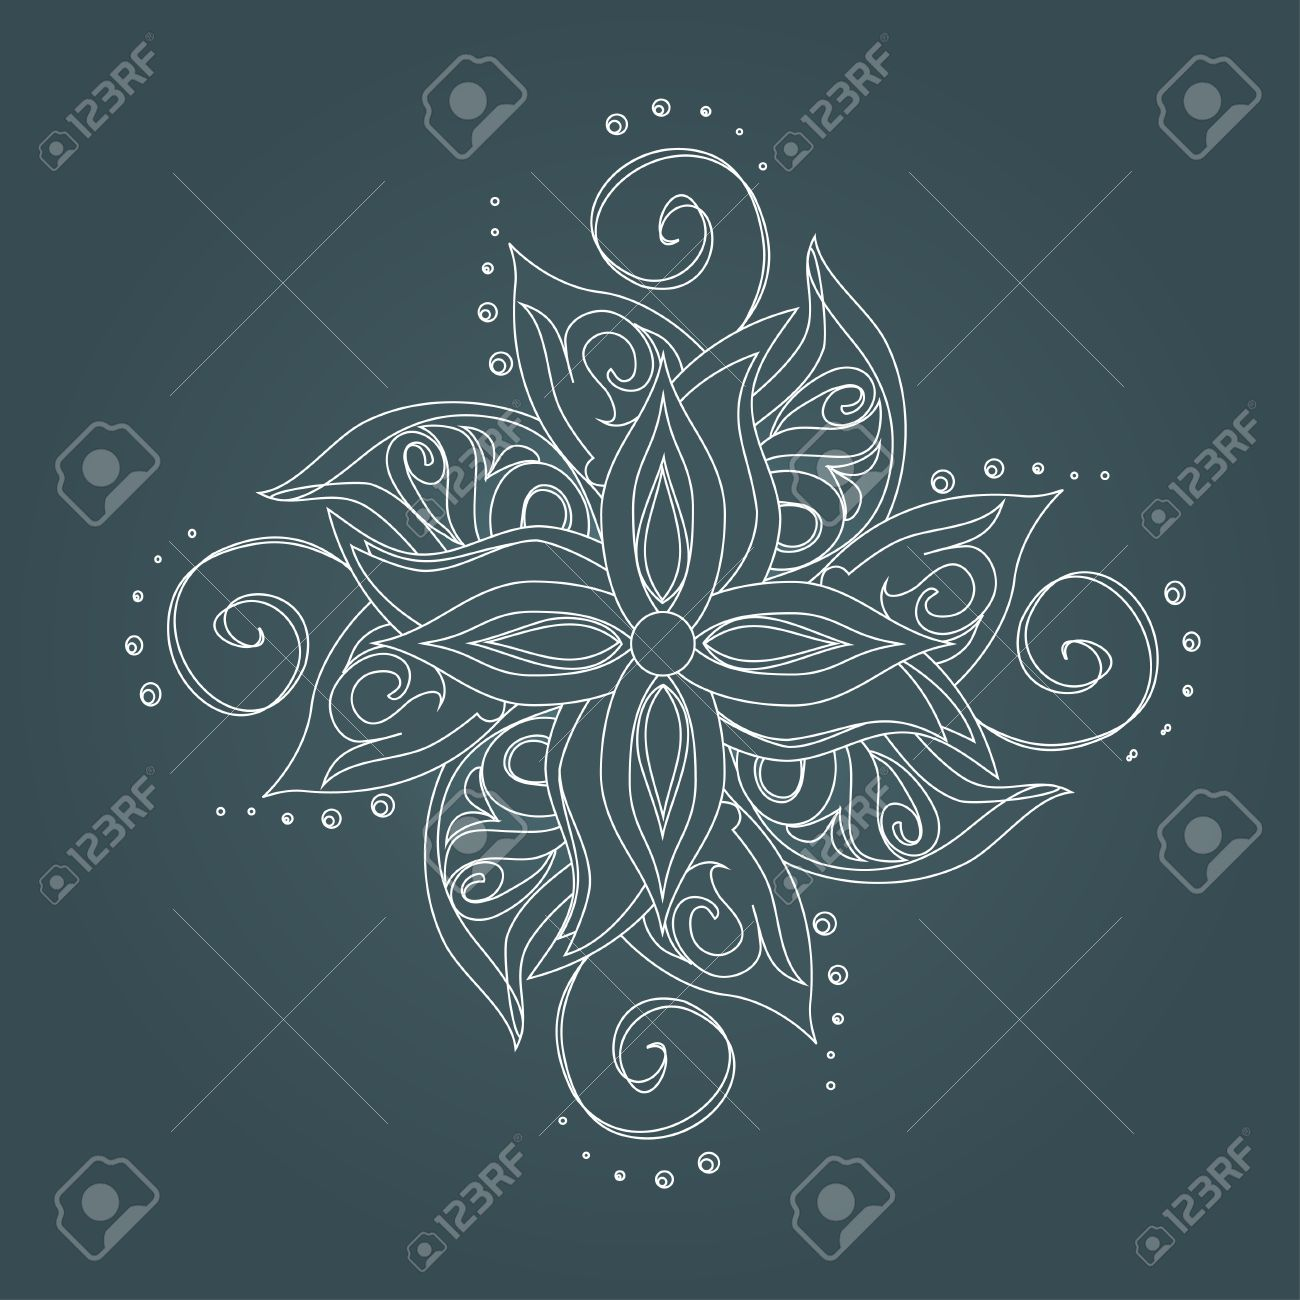 Abstract floral pattern  Stylized flower against dark green background Stock Vector - 16253662